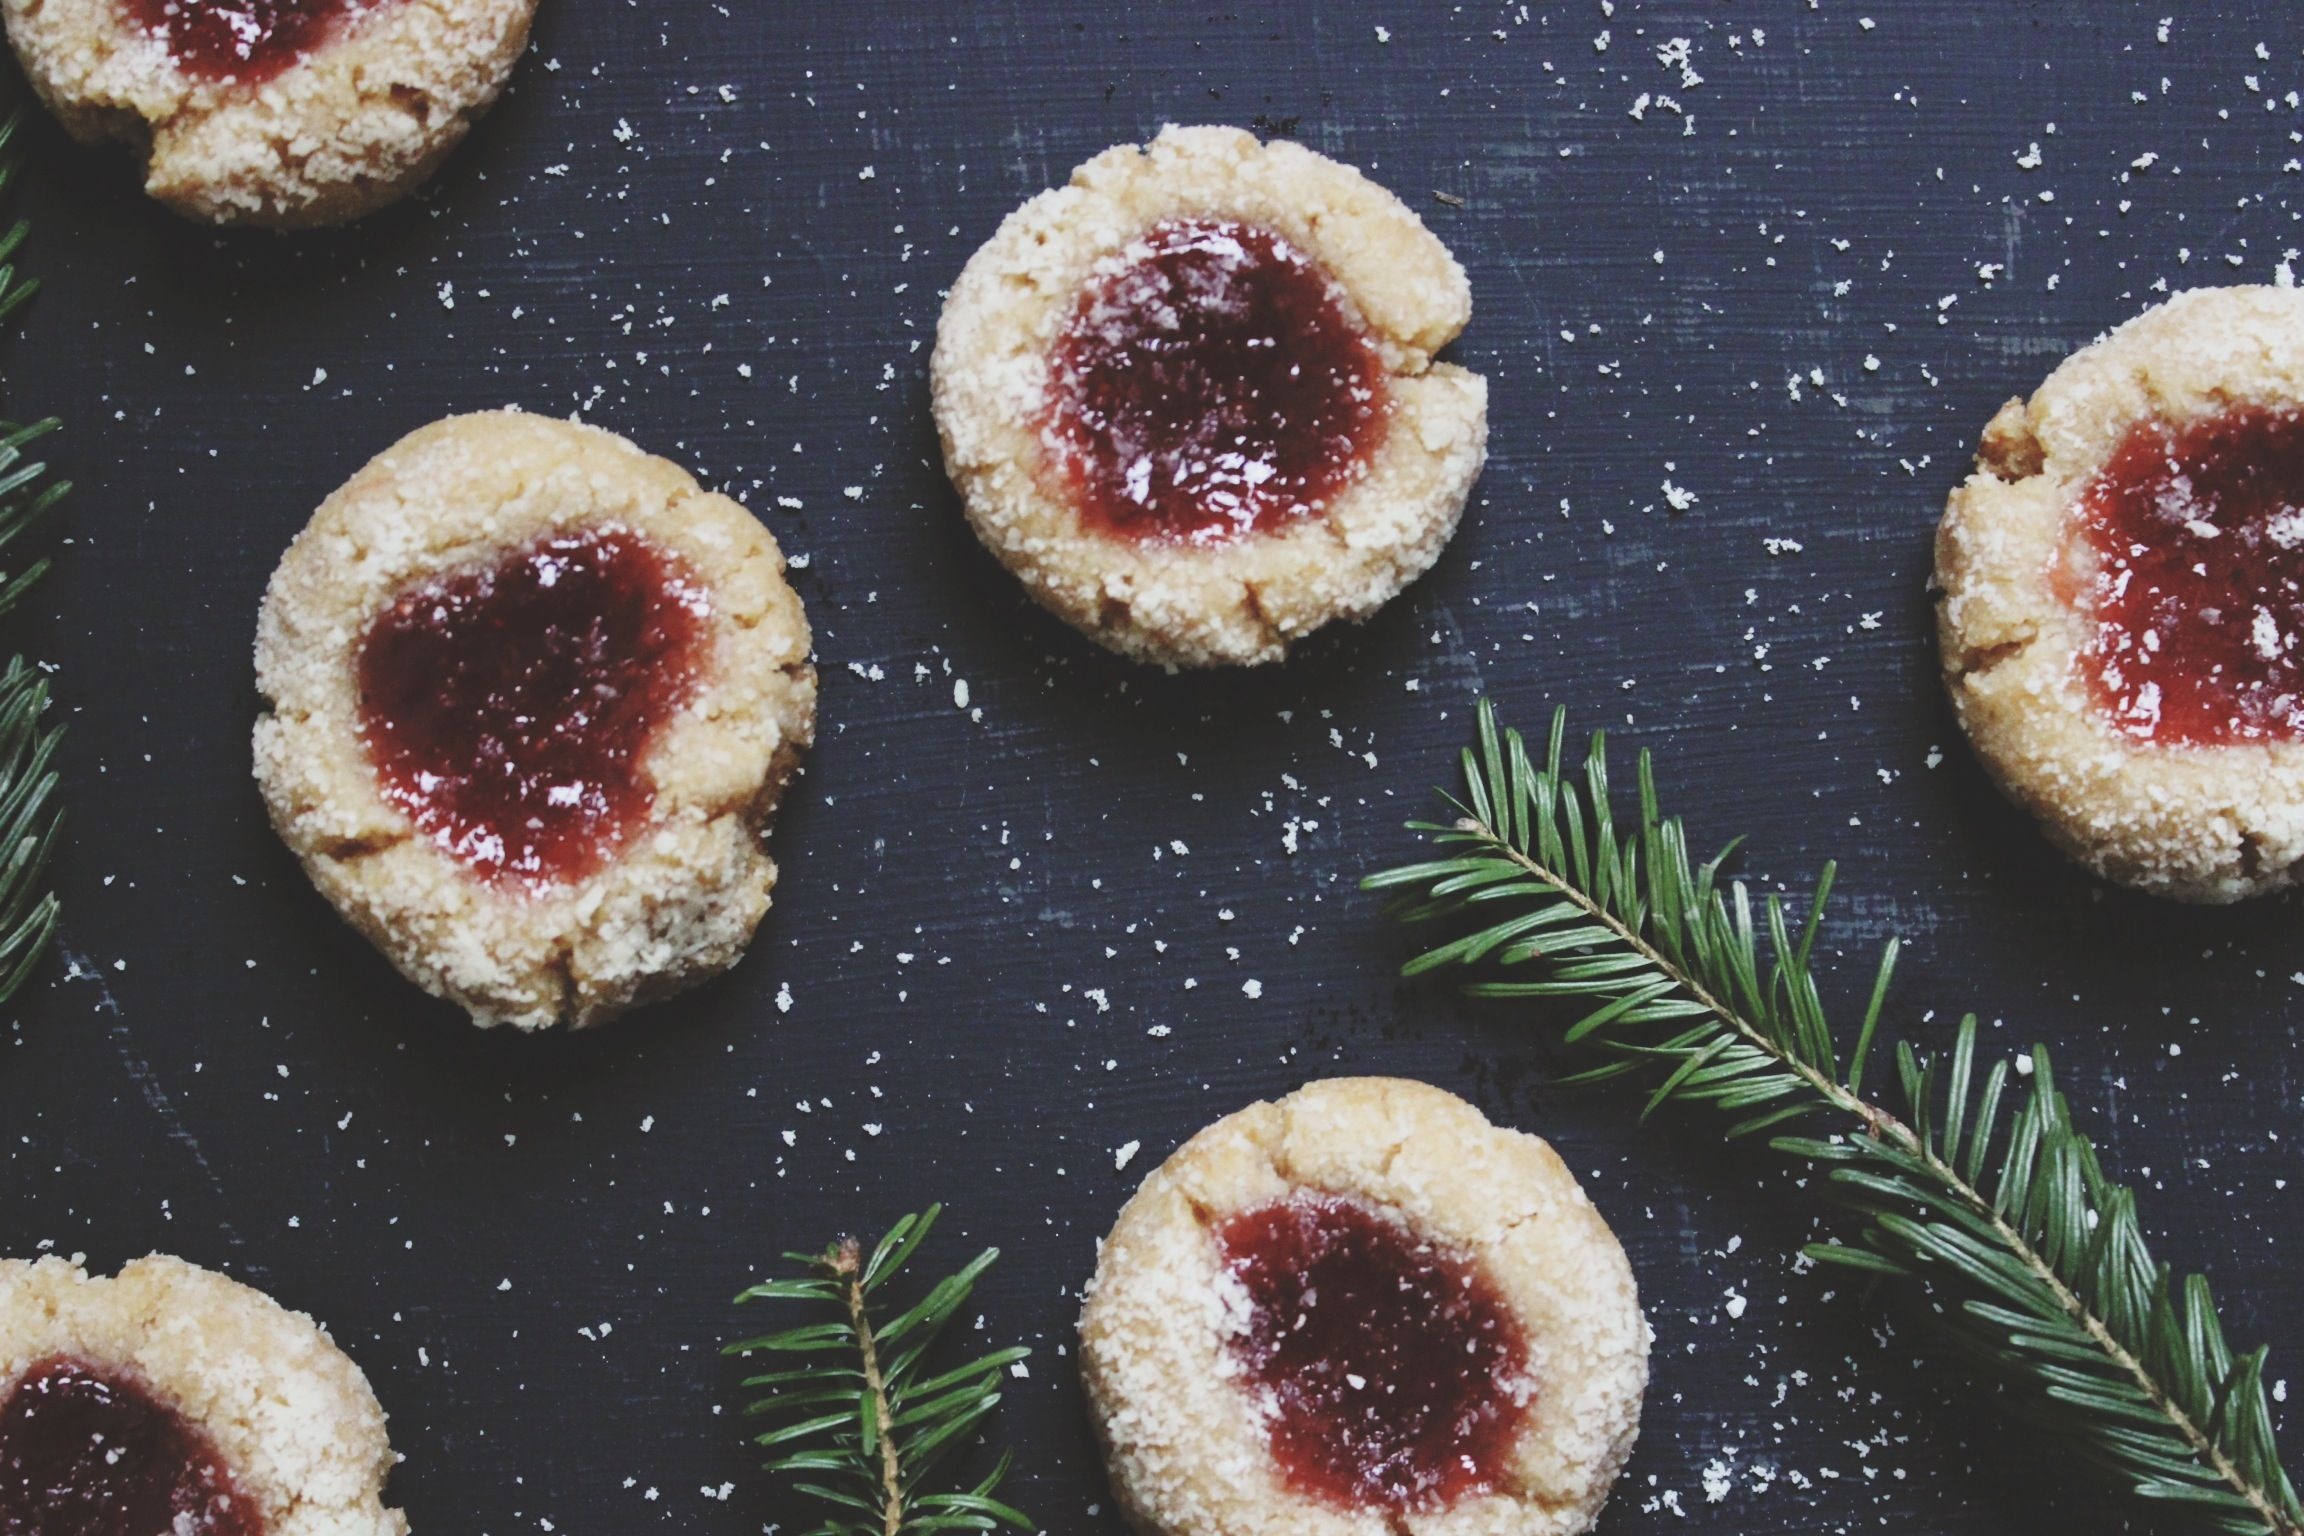 These classic jam thumbprint cookies are naturally gluten-free, vegan and paleo-friendly.